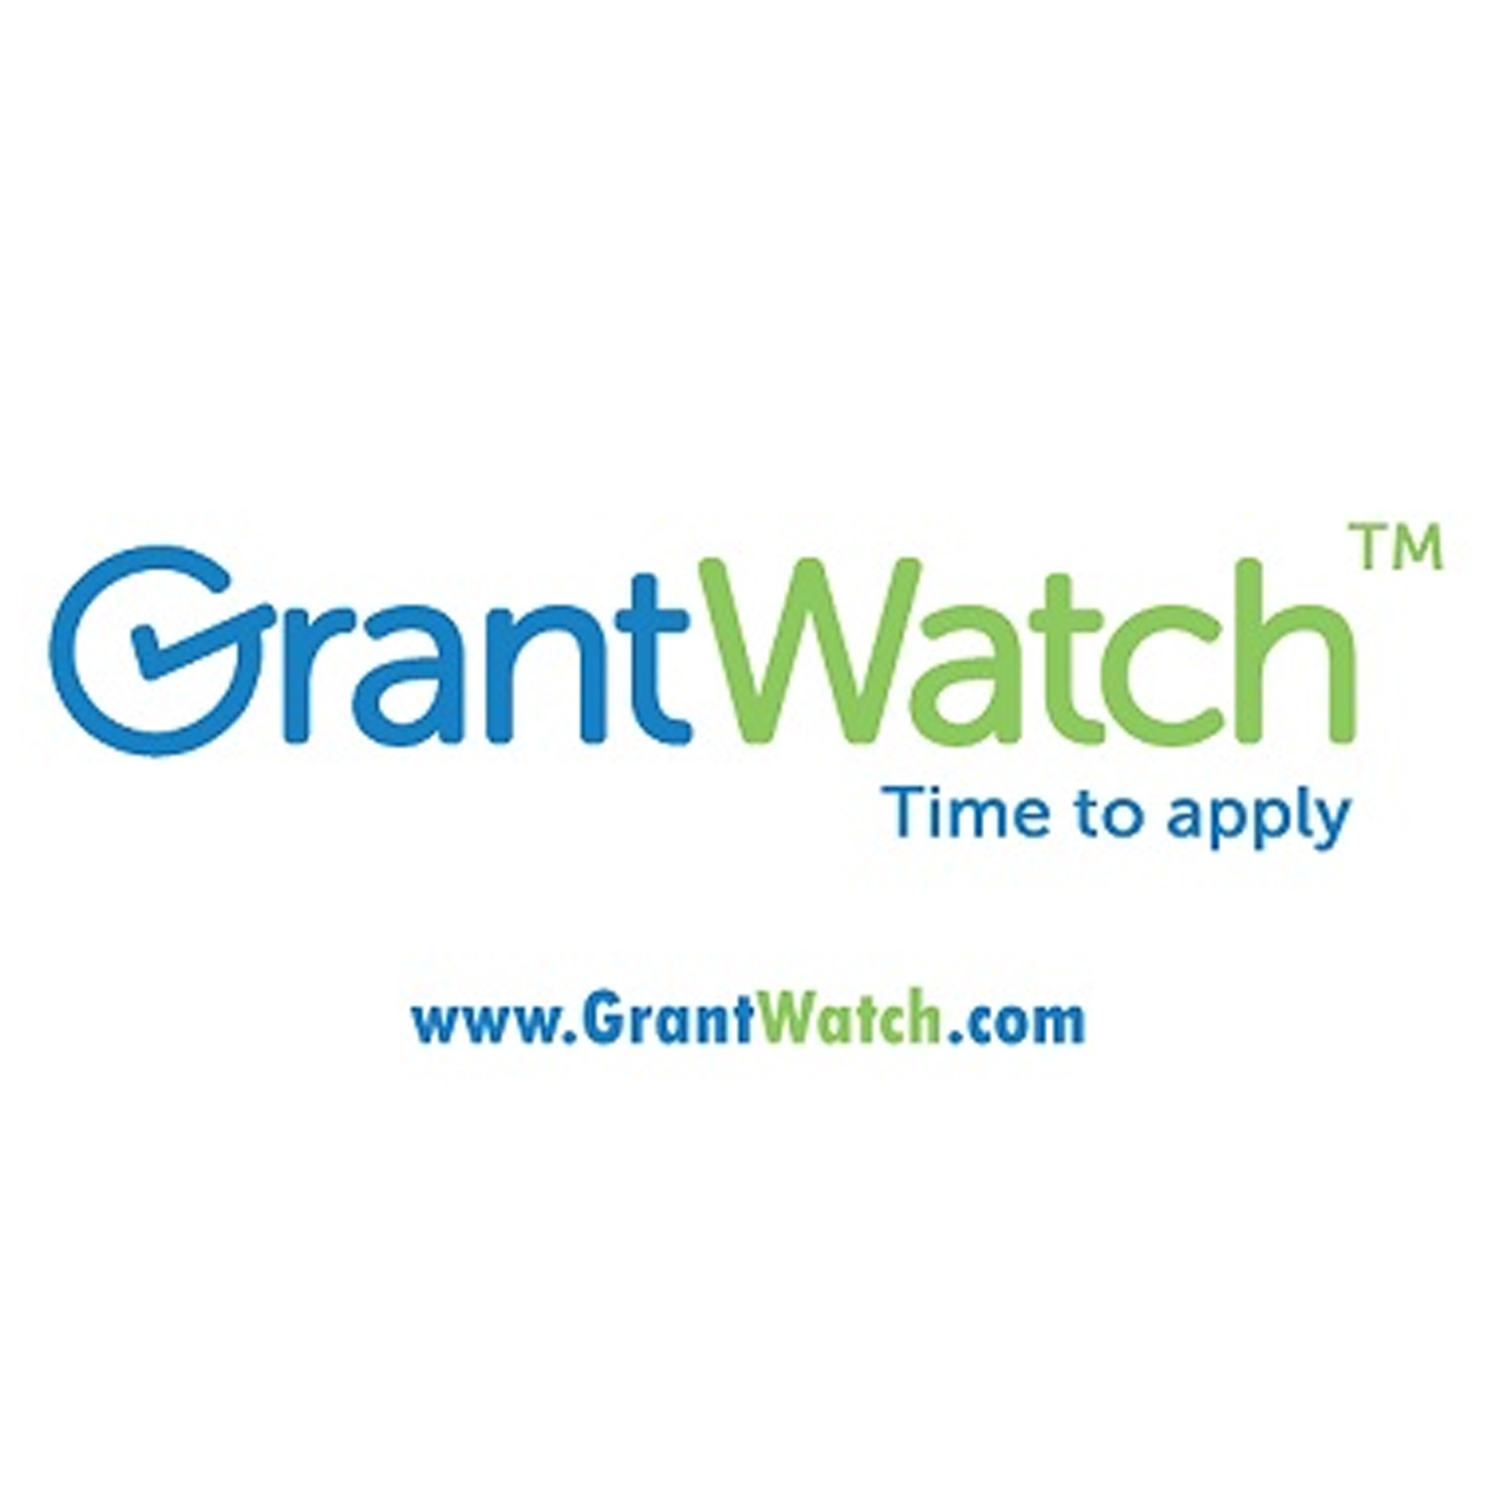 Vermont Grant Watch emergency backup generator grants